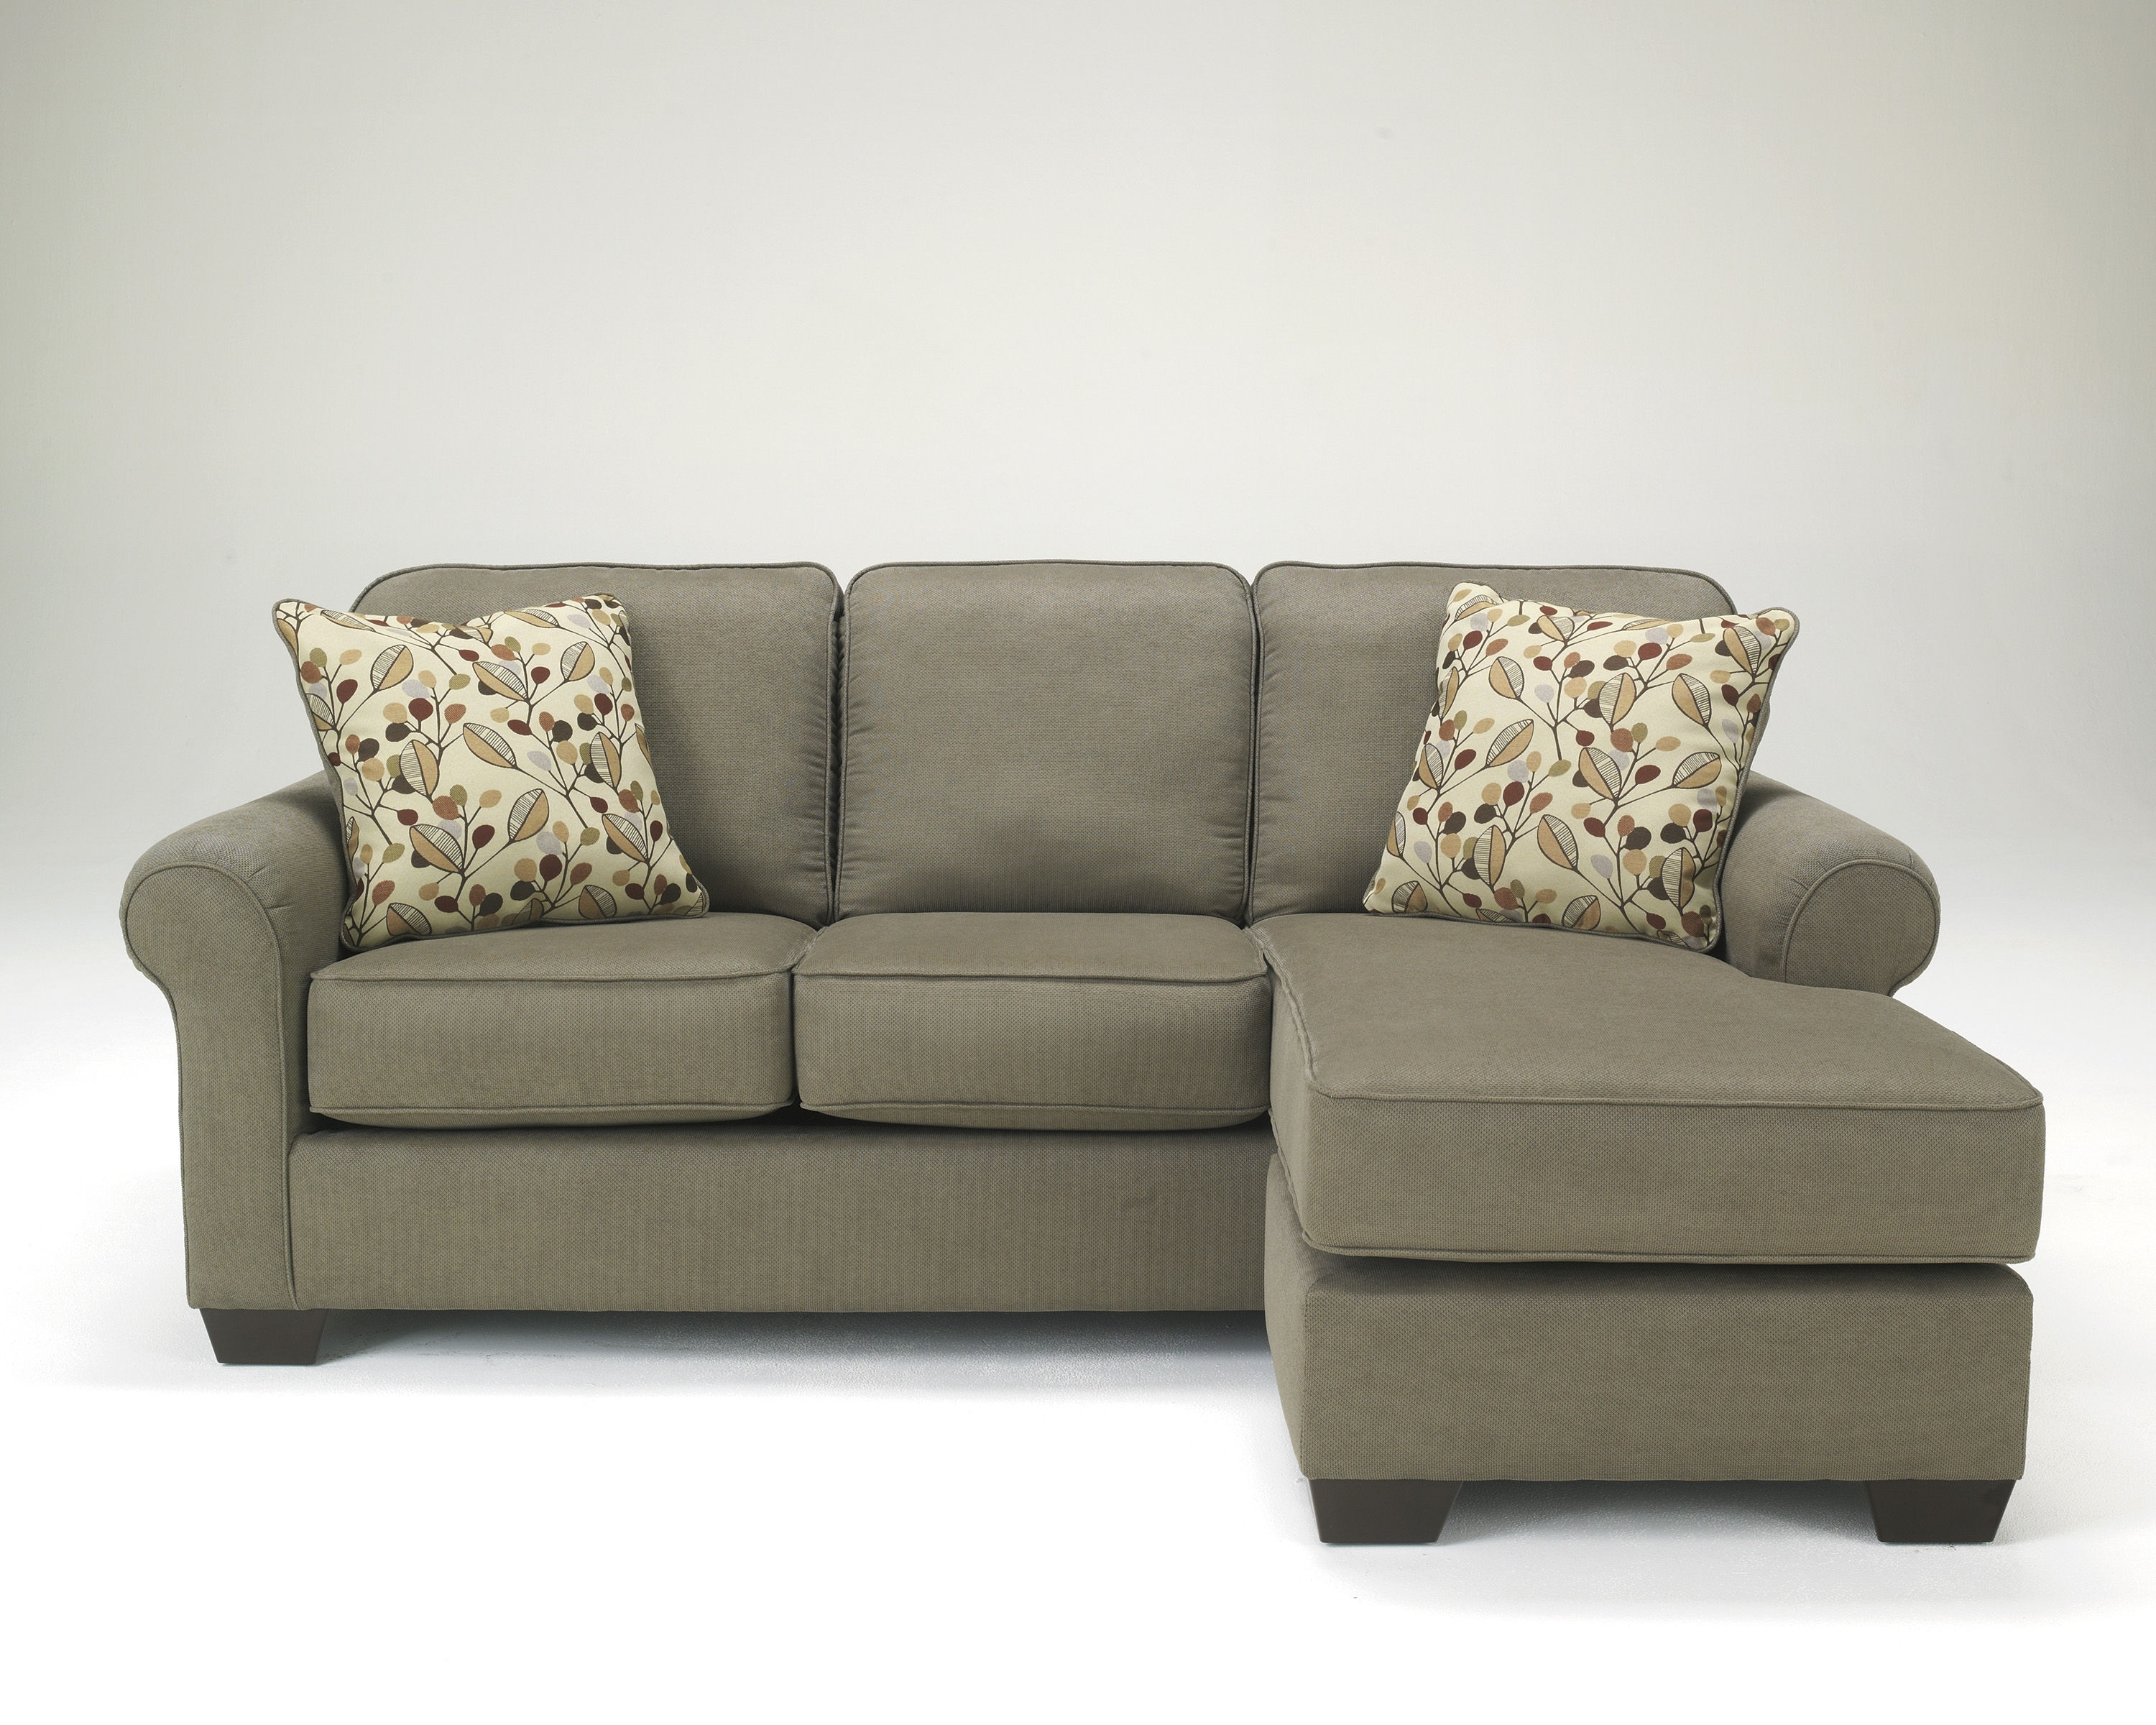 Ashley Furniture Danely Dusk Sofa Chaise Sectional (View 1 of 15)